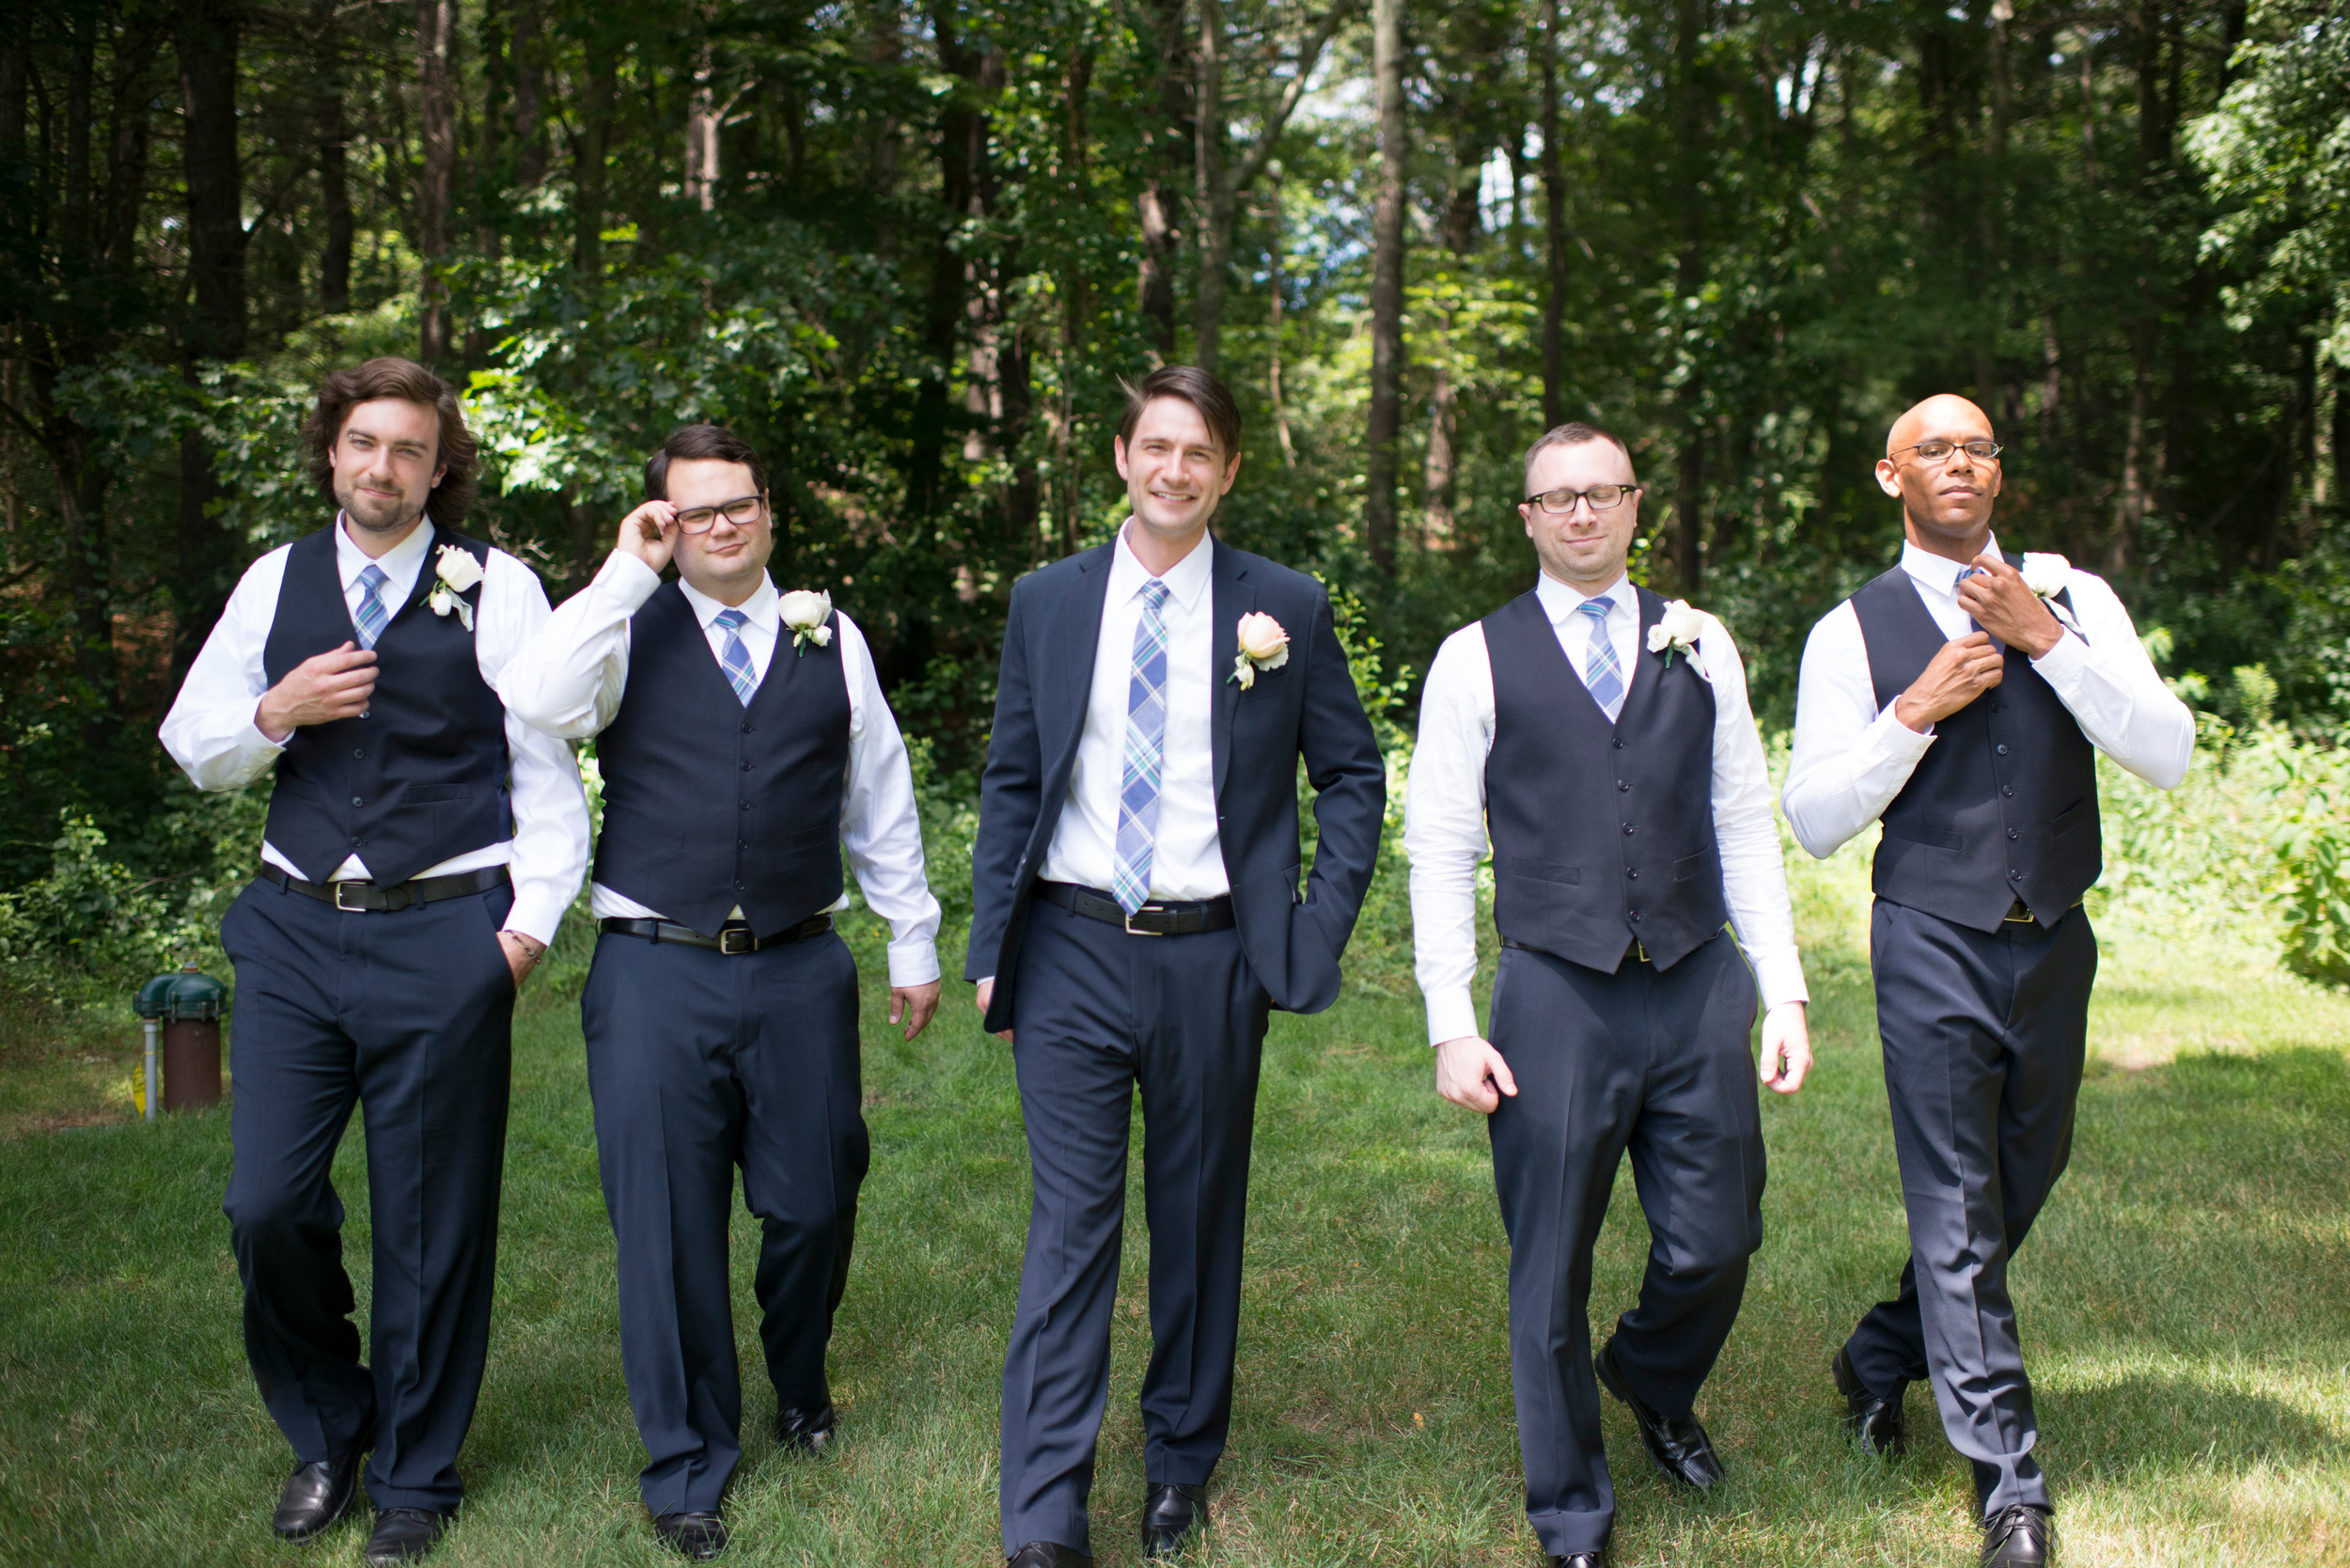 The dapper groomsfolks!